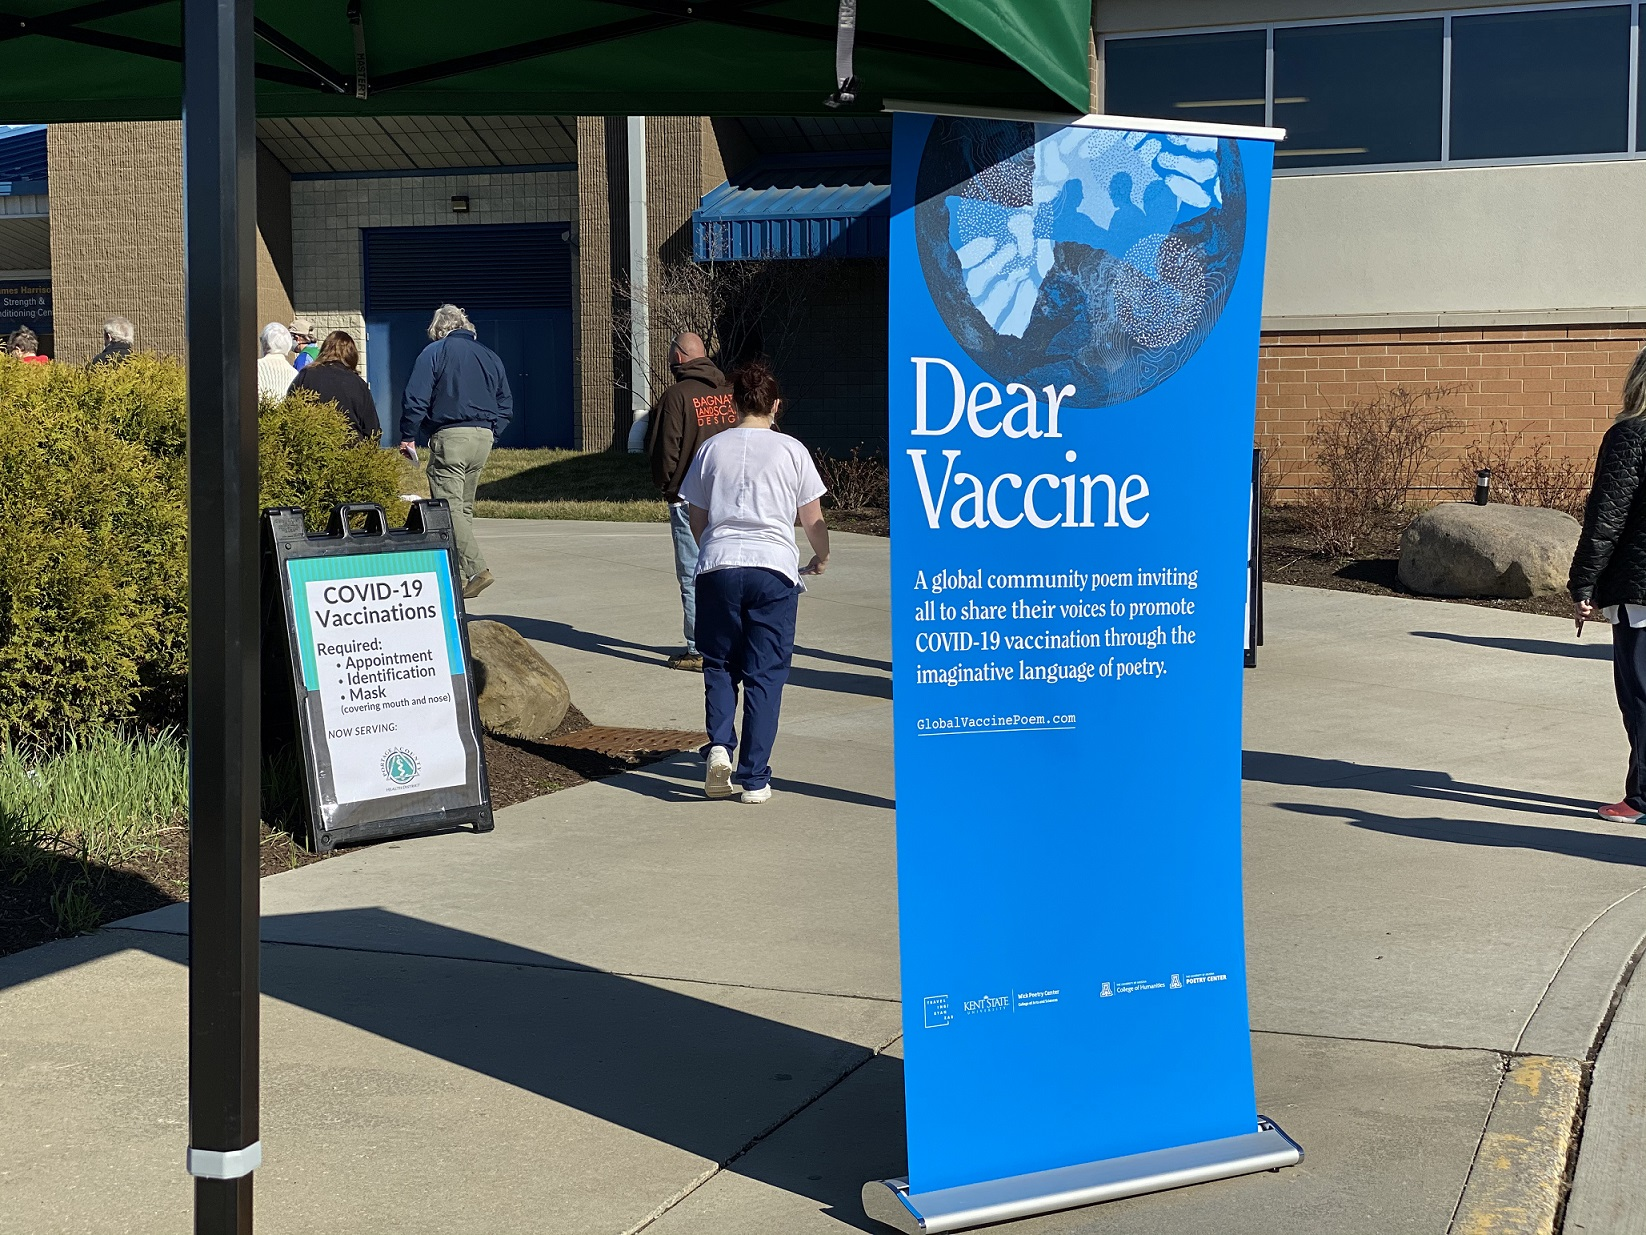 A banner promoting the Global Vaccine Poem project stands outside the Kent State University Field House during a mass COVID-19 vaccination event.